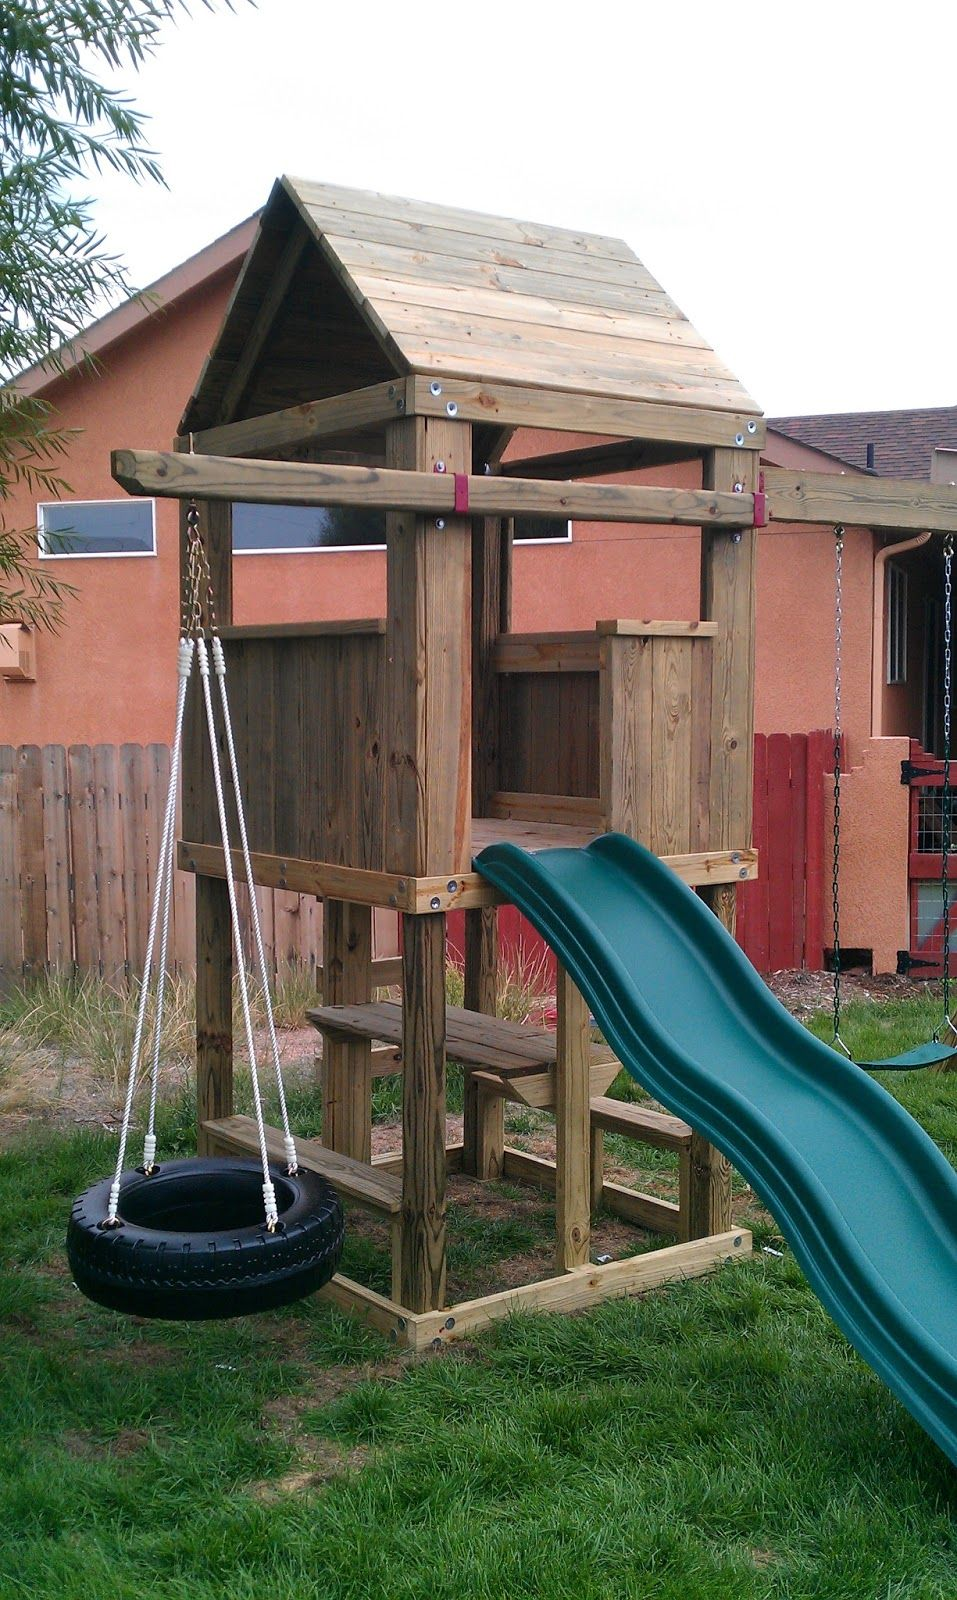 4 X4 Clubhouse With Wooden Roof Ladder Entry Standard